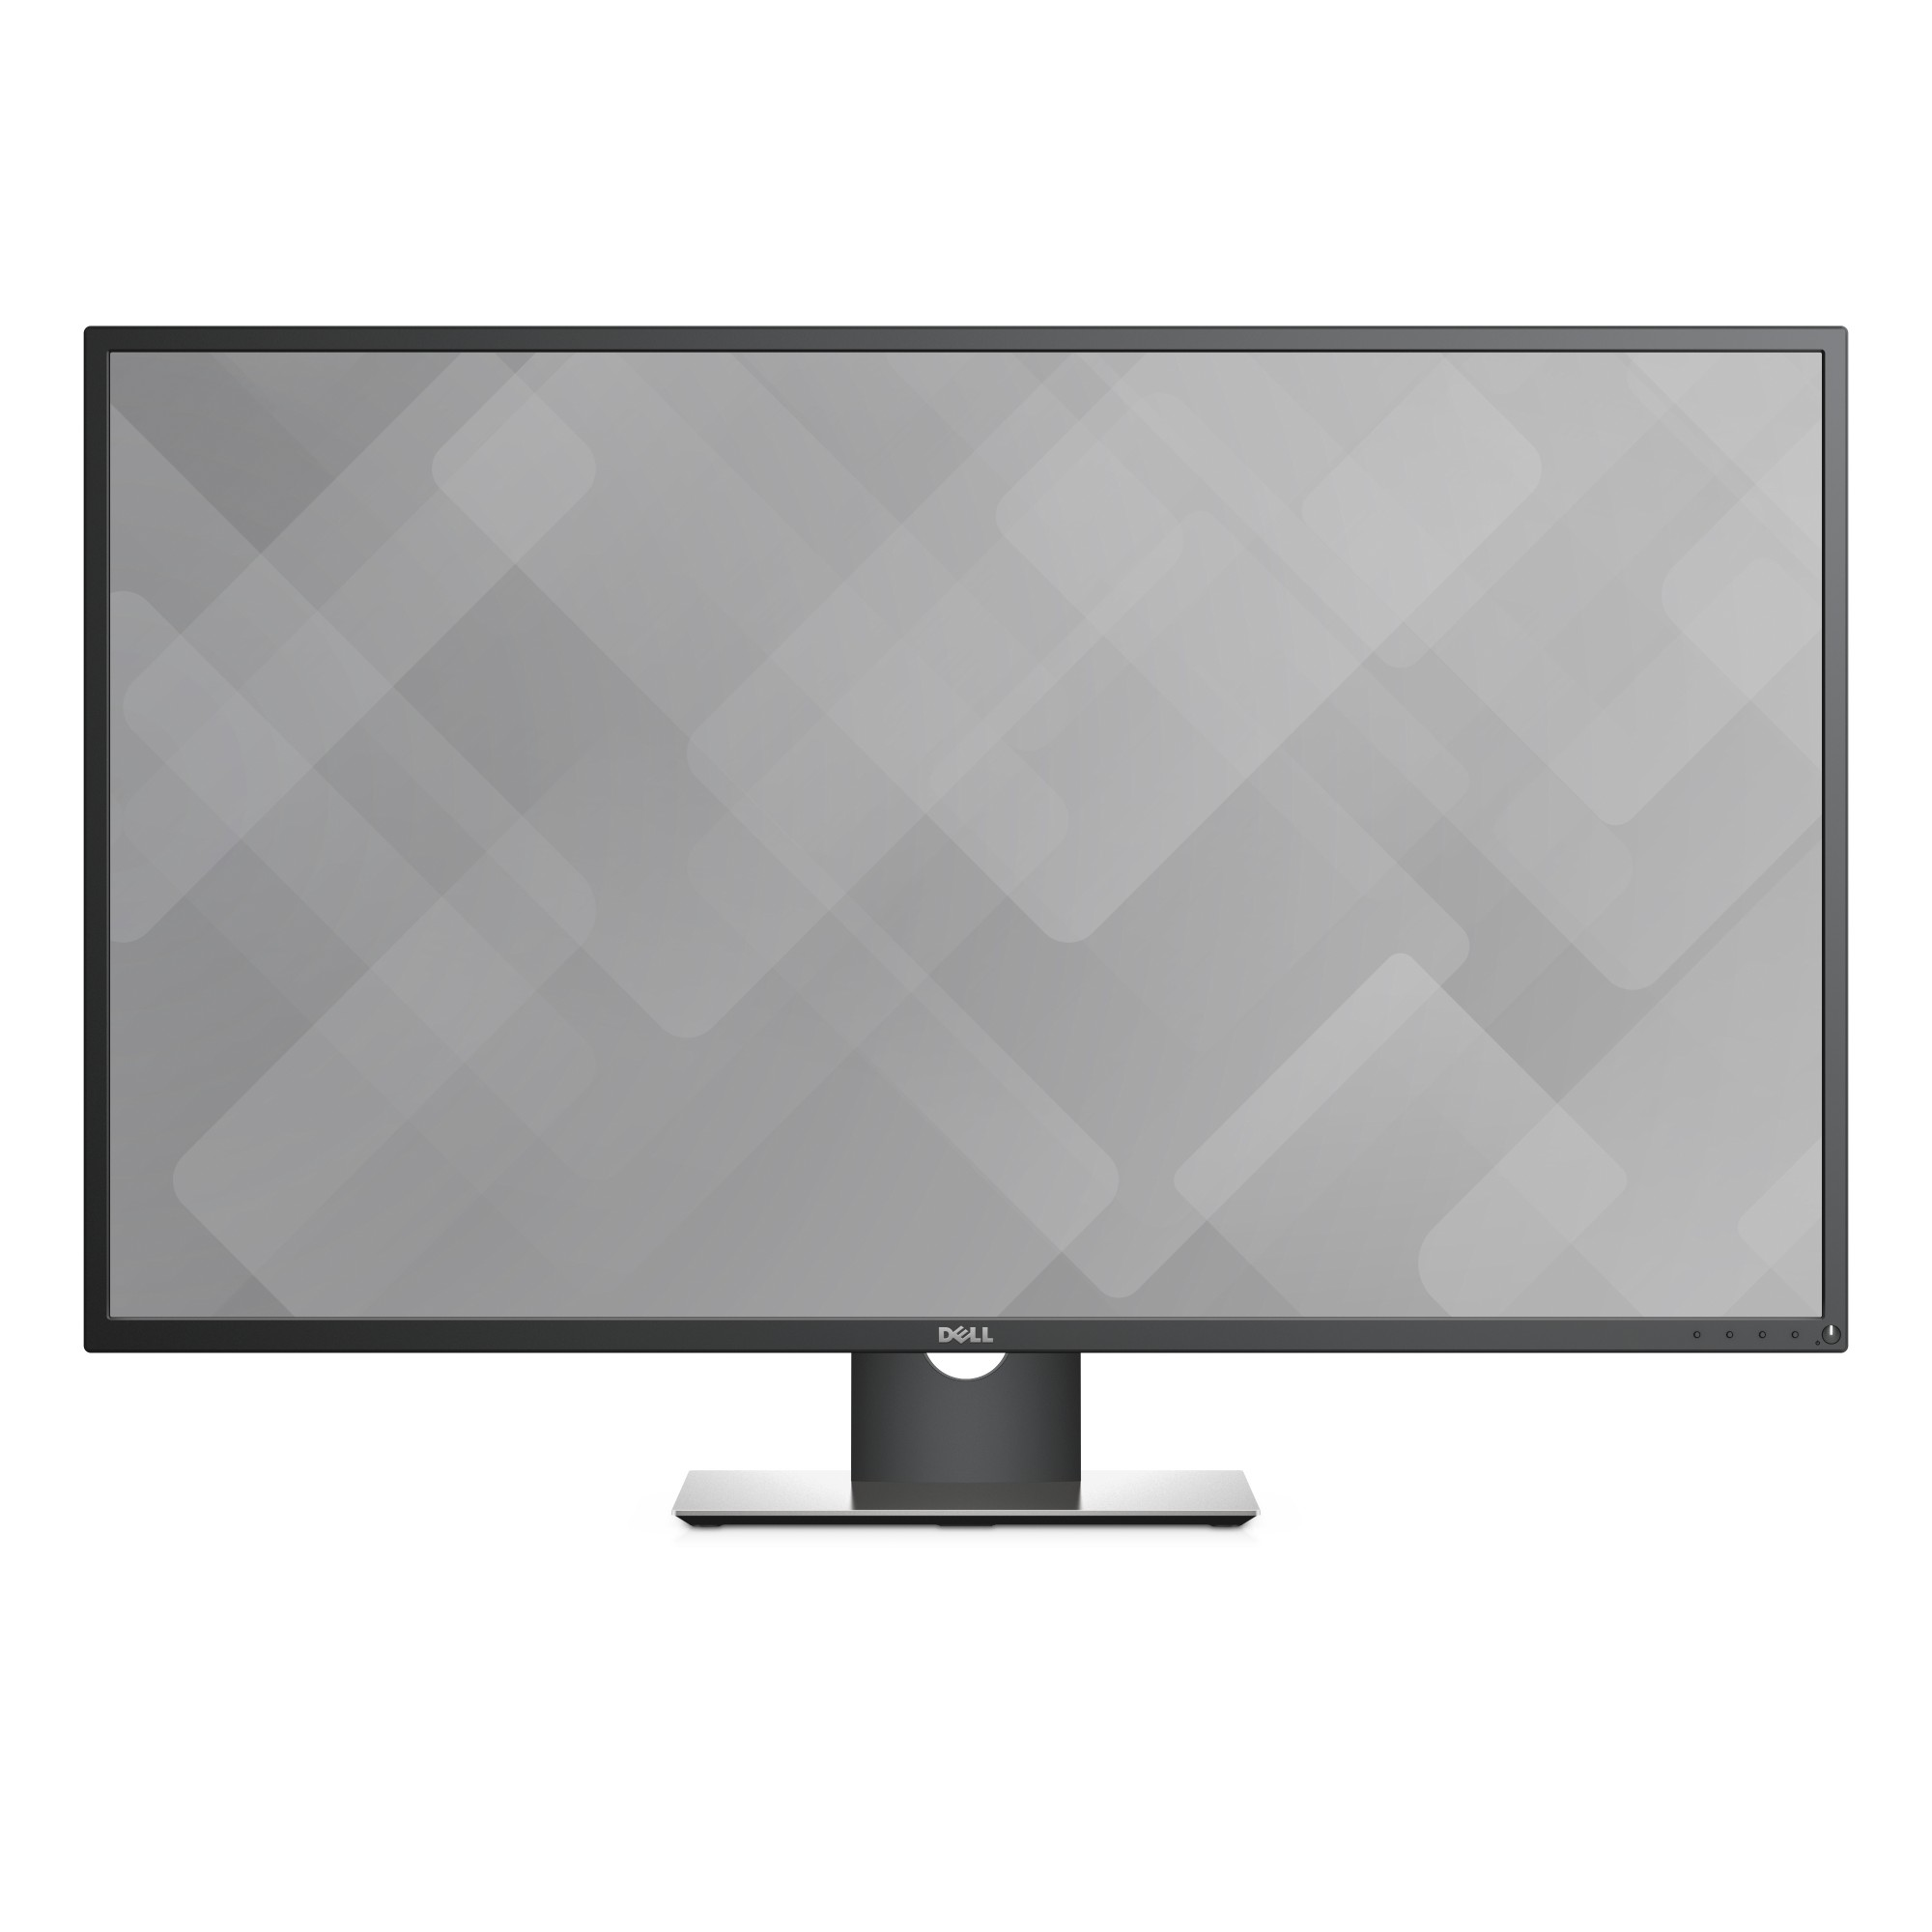 DELL P4317Q LED display 109.2 cm (43